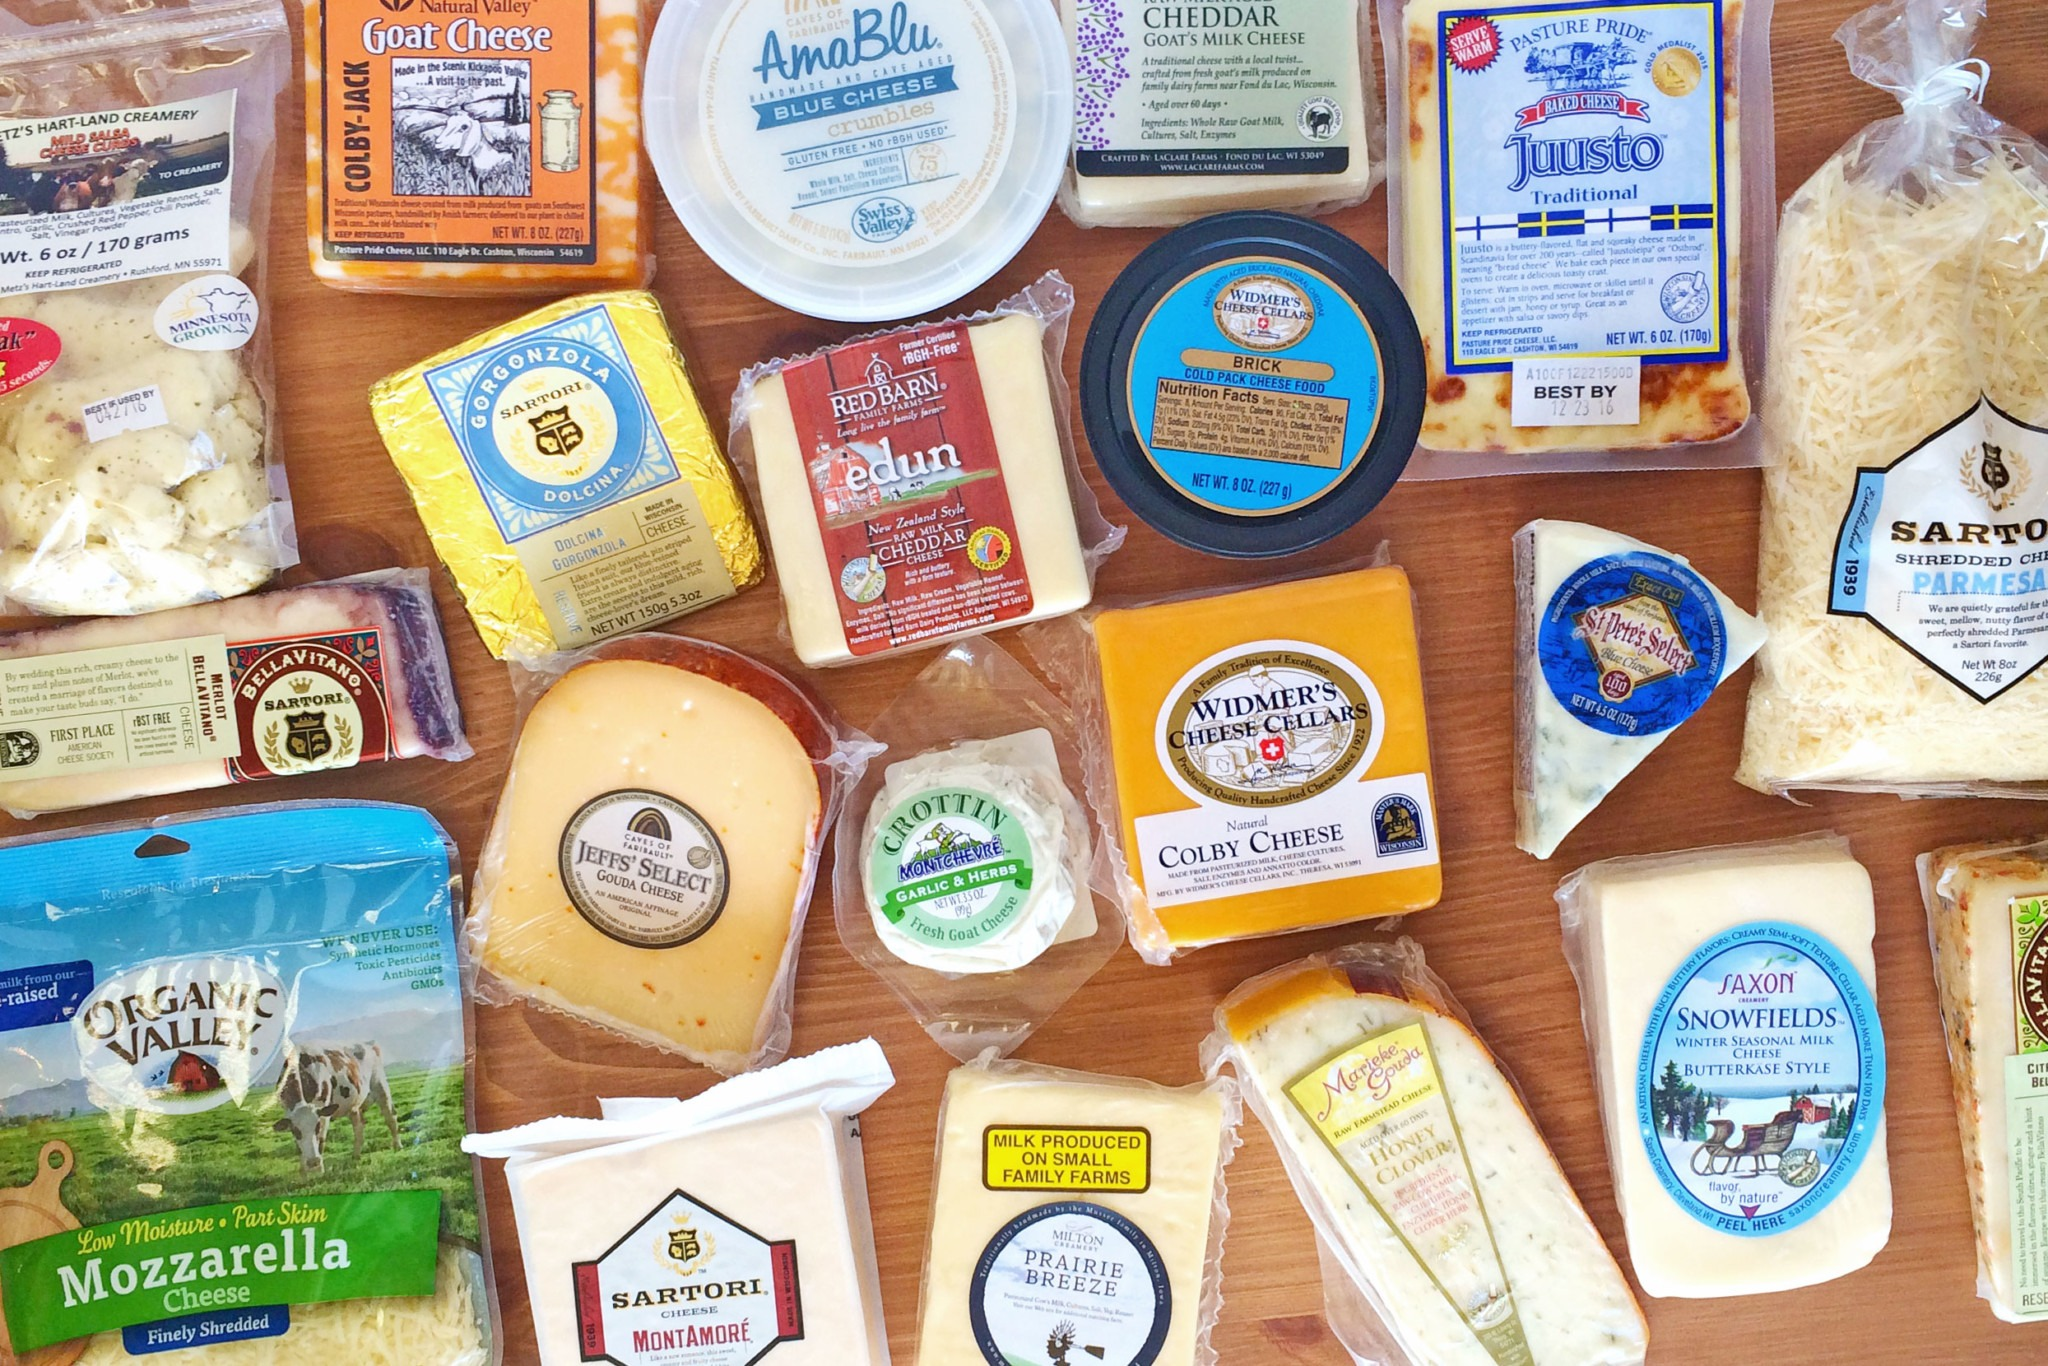 Large array of cheese products on a wooden table